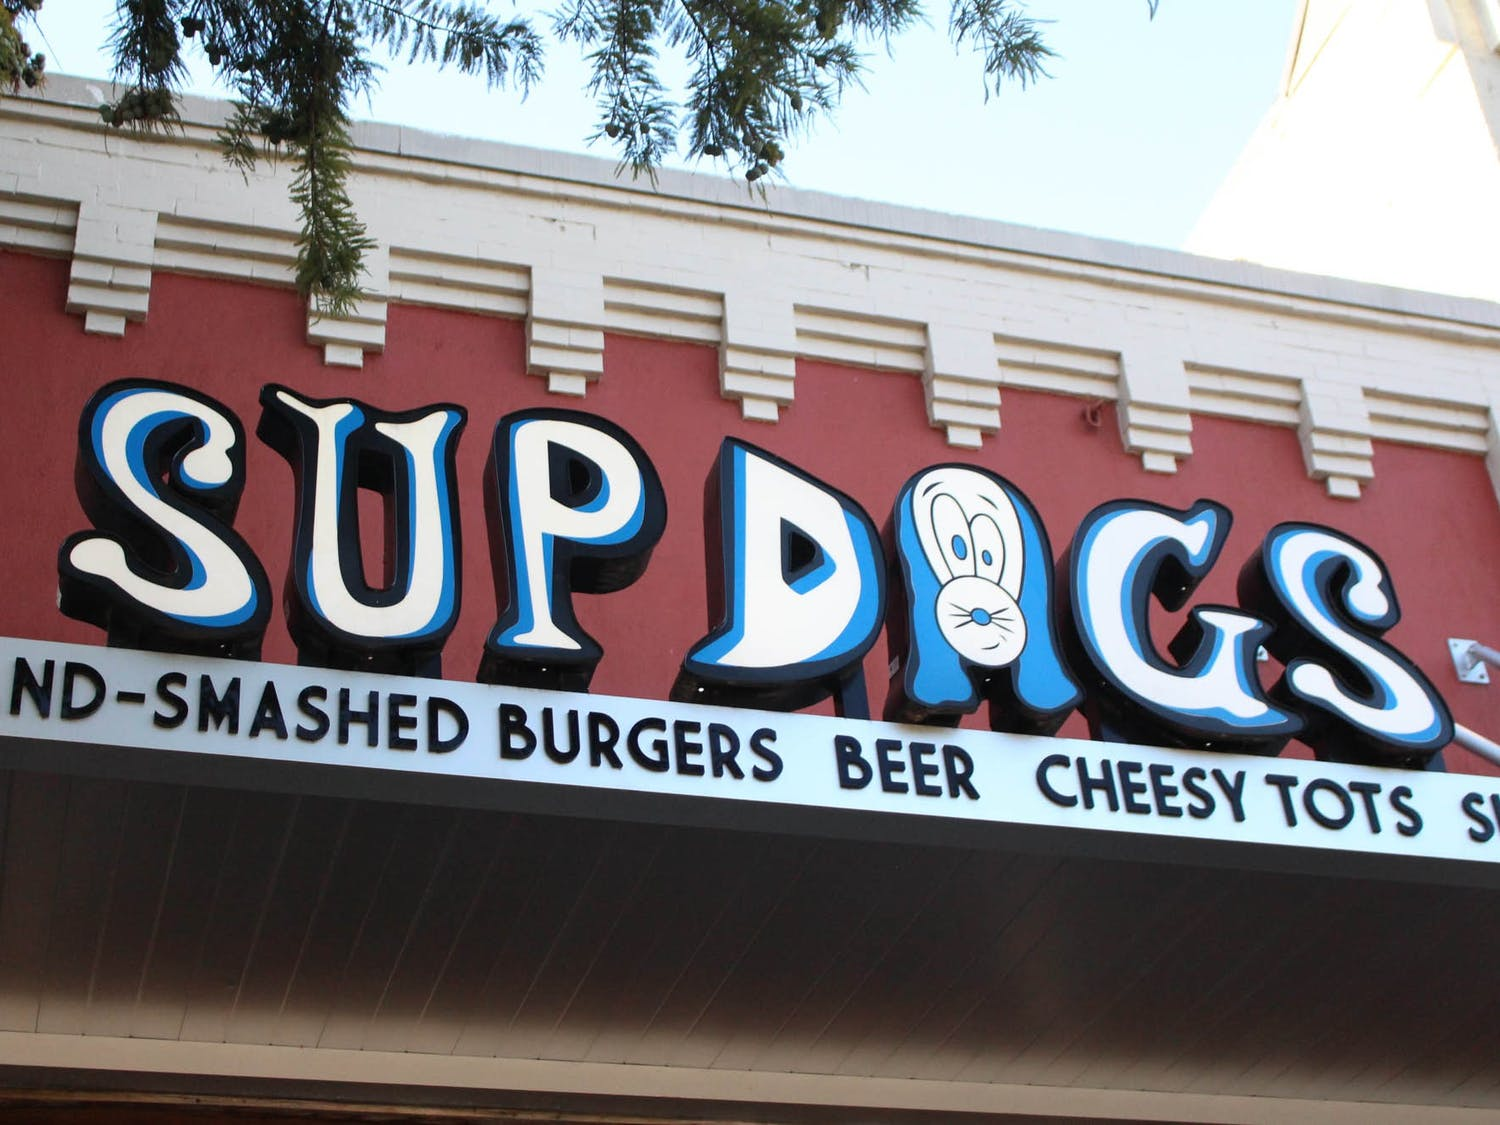 Sup Dogs on Franklin Street pictured on Sept. 23, 2021.